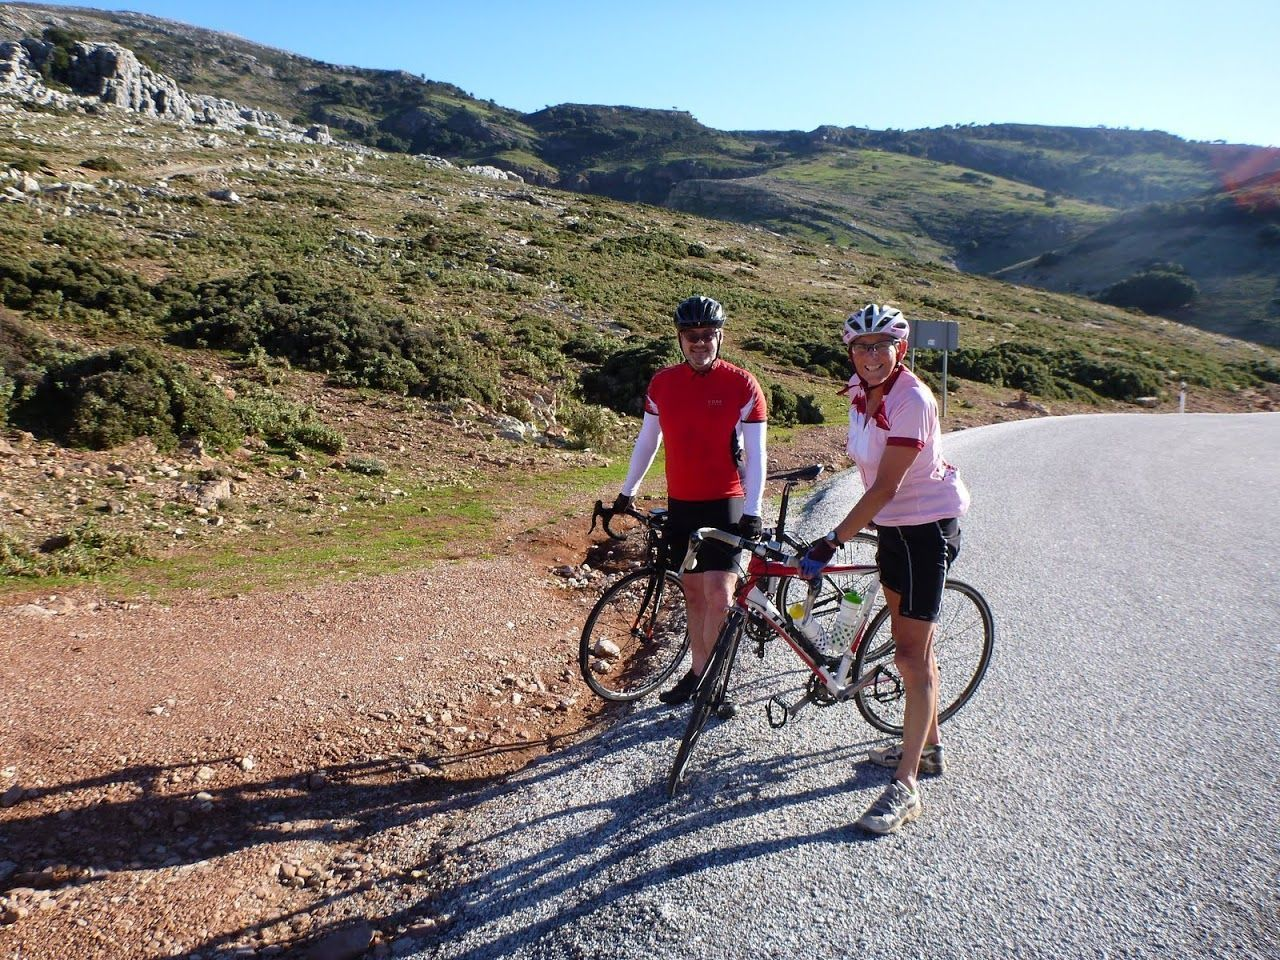 spain road to ronda road cycling holiday 6.jpg - Southern Spain - Roads of Ronda - Self-Guided Road Cycling Holiday - Road Cycling